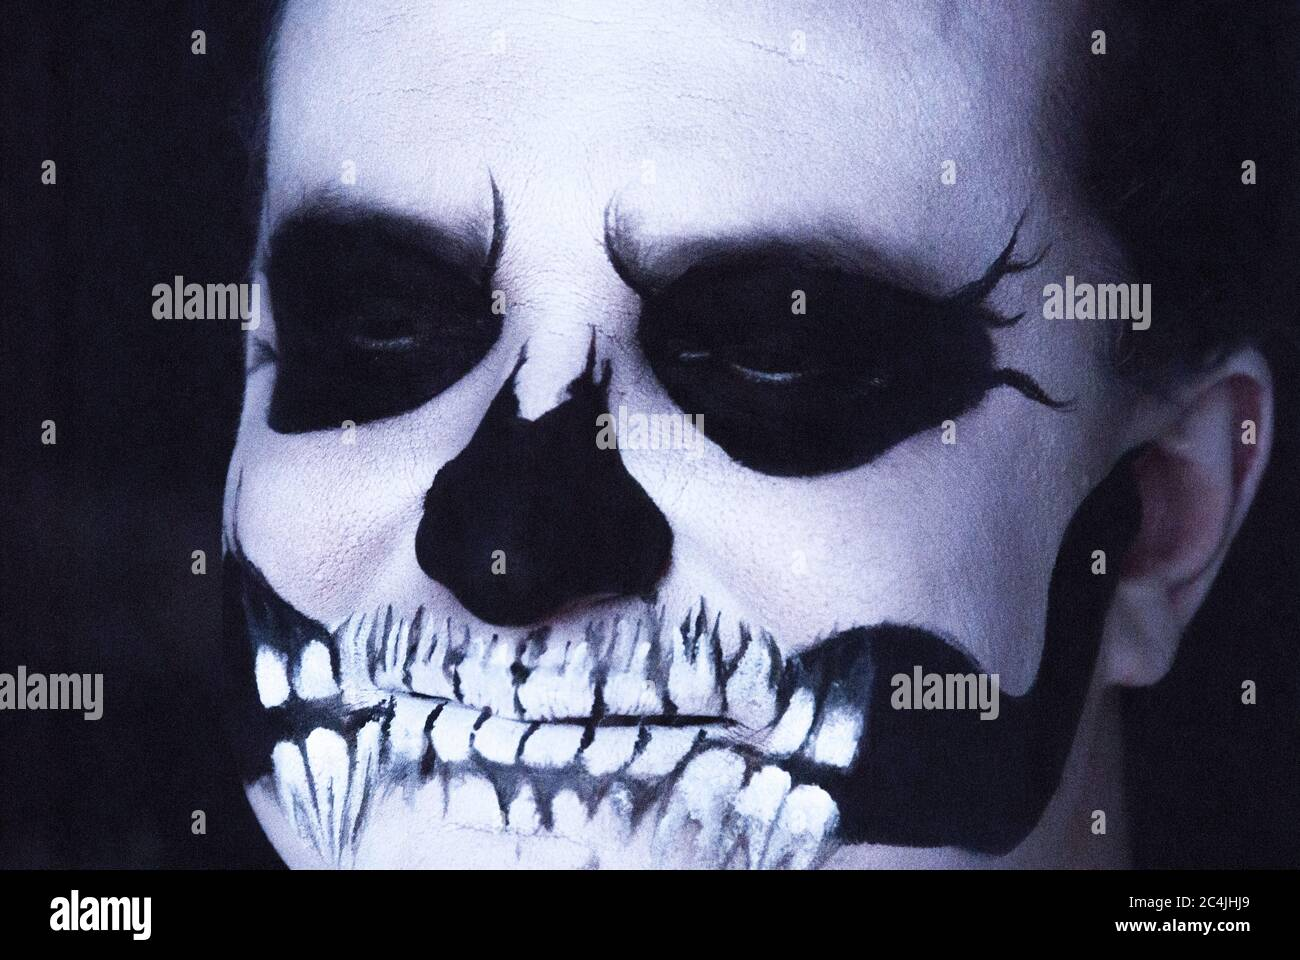 Skeleton Face Paint High Resolution Stock Photography And Images Alamy